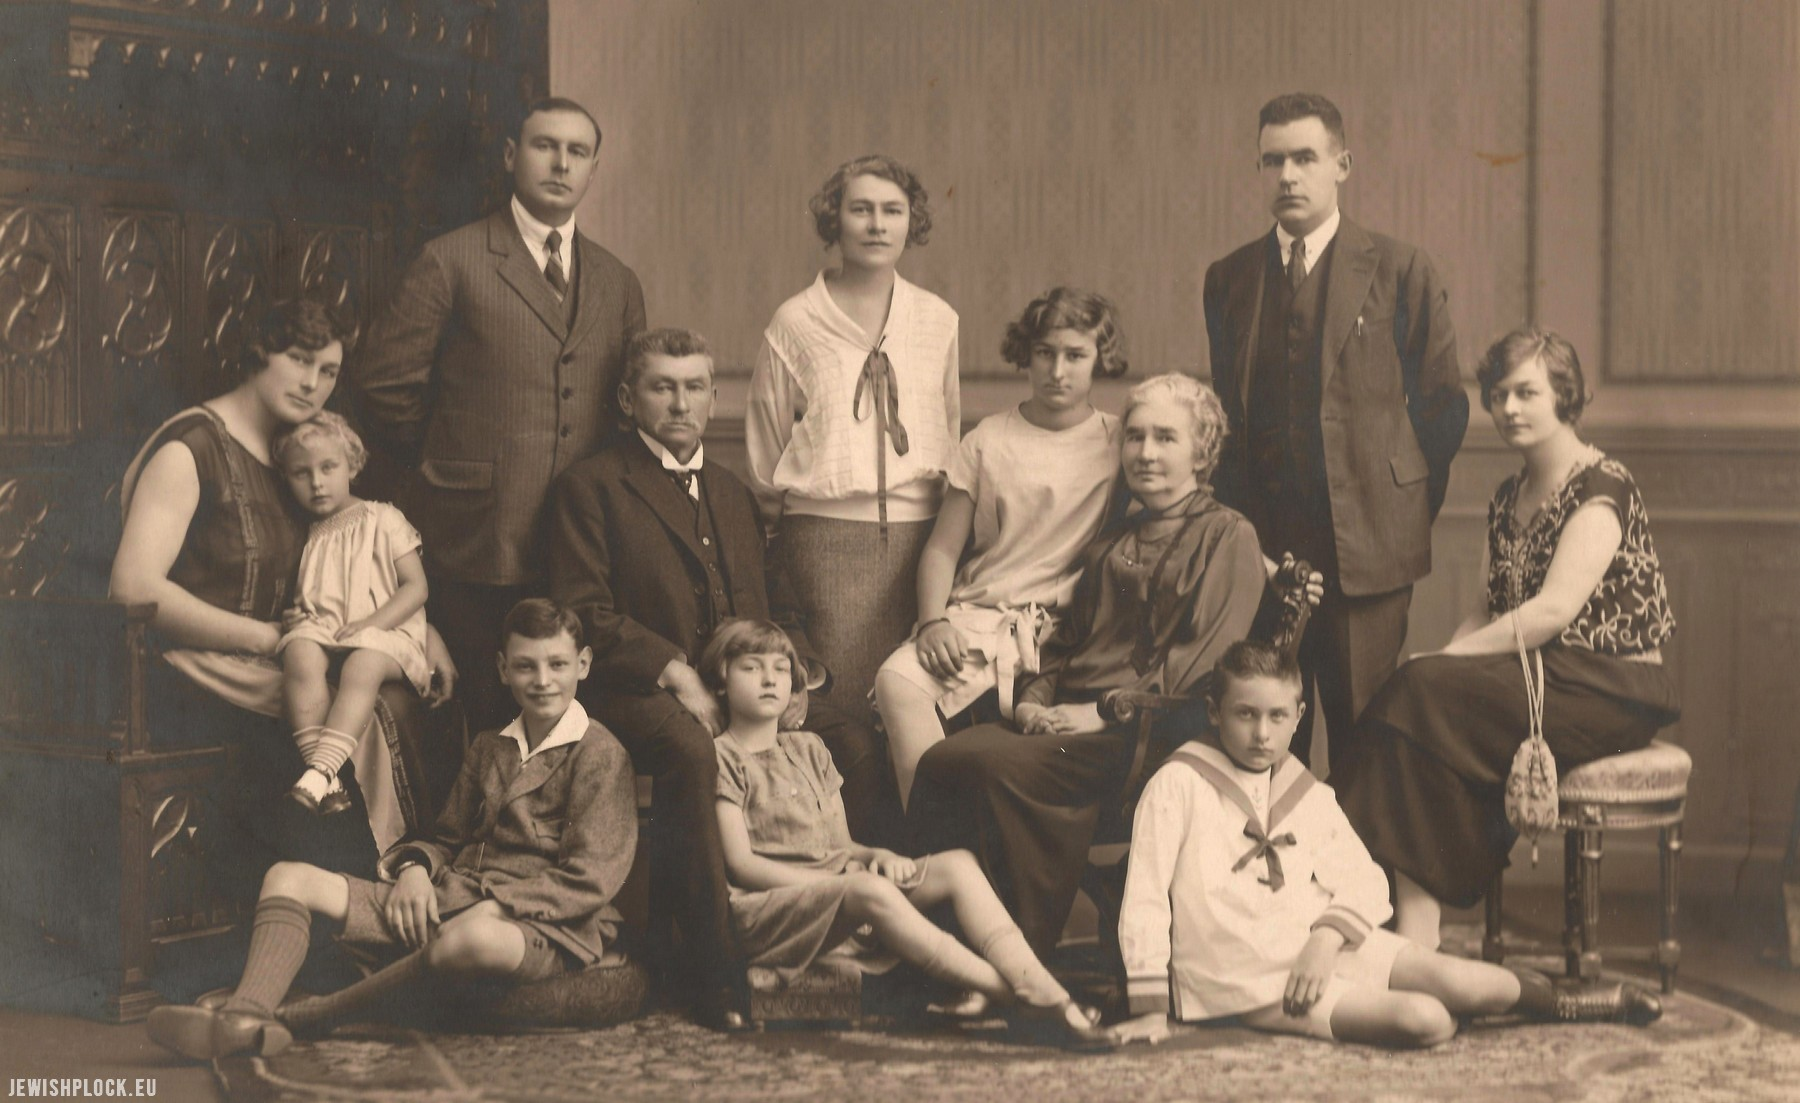 The Sadzawka family